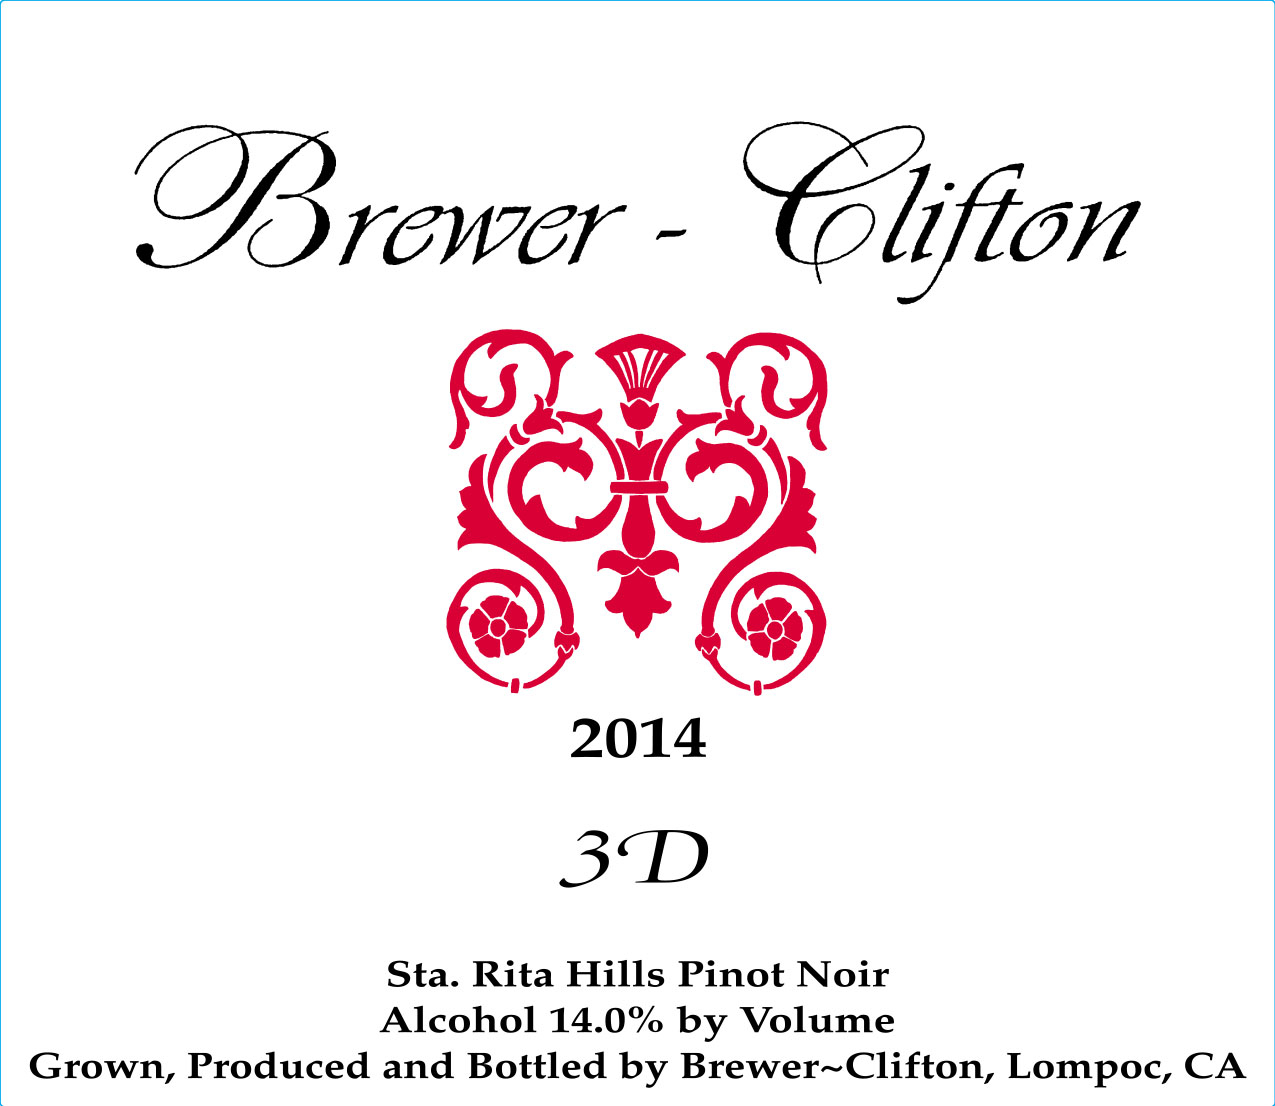 2014 Brewer-Clifton Pinot Noir 3 D Vineyard